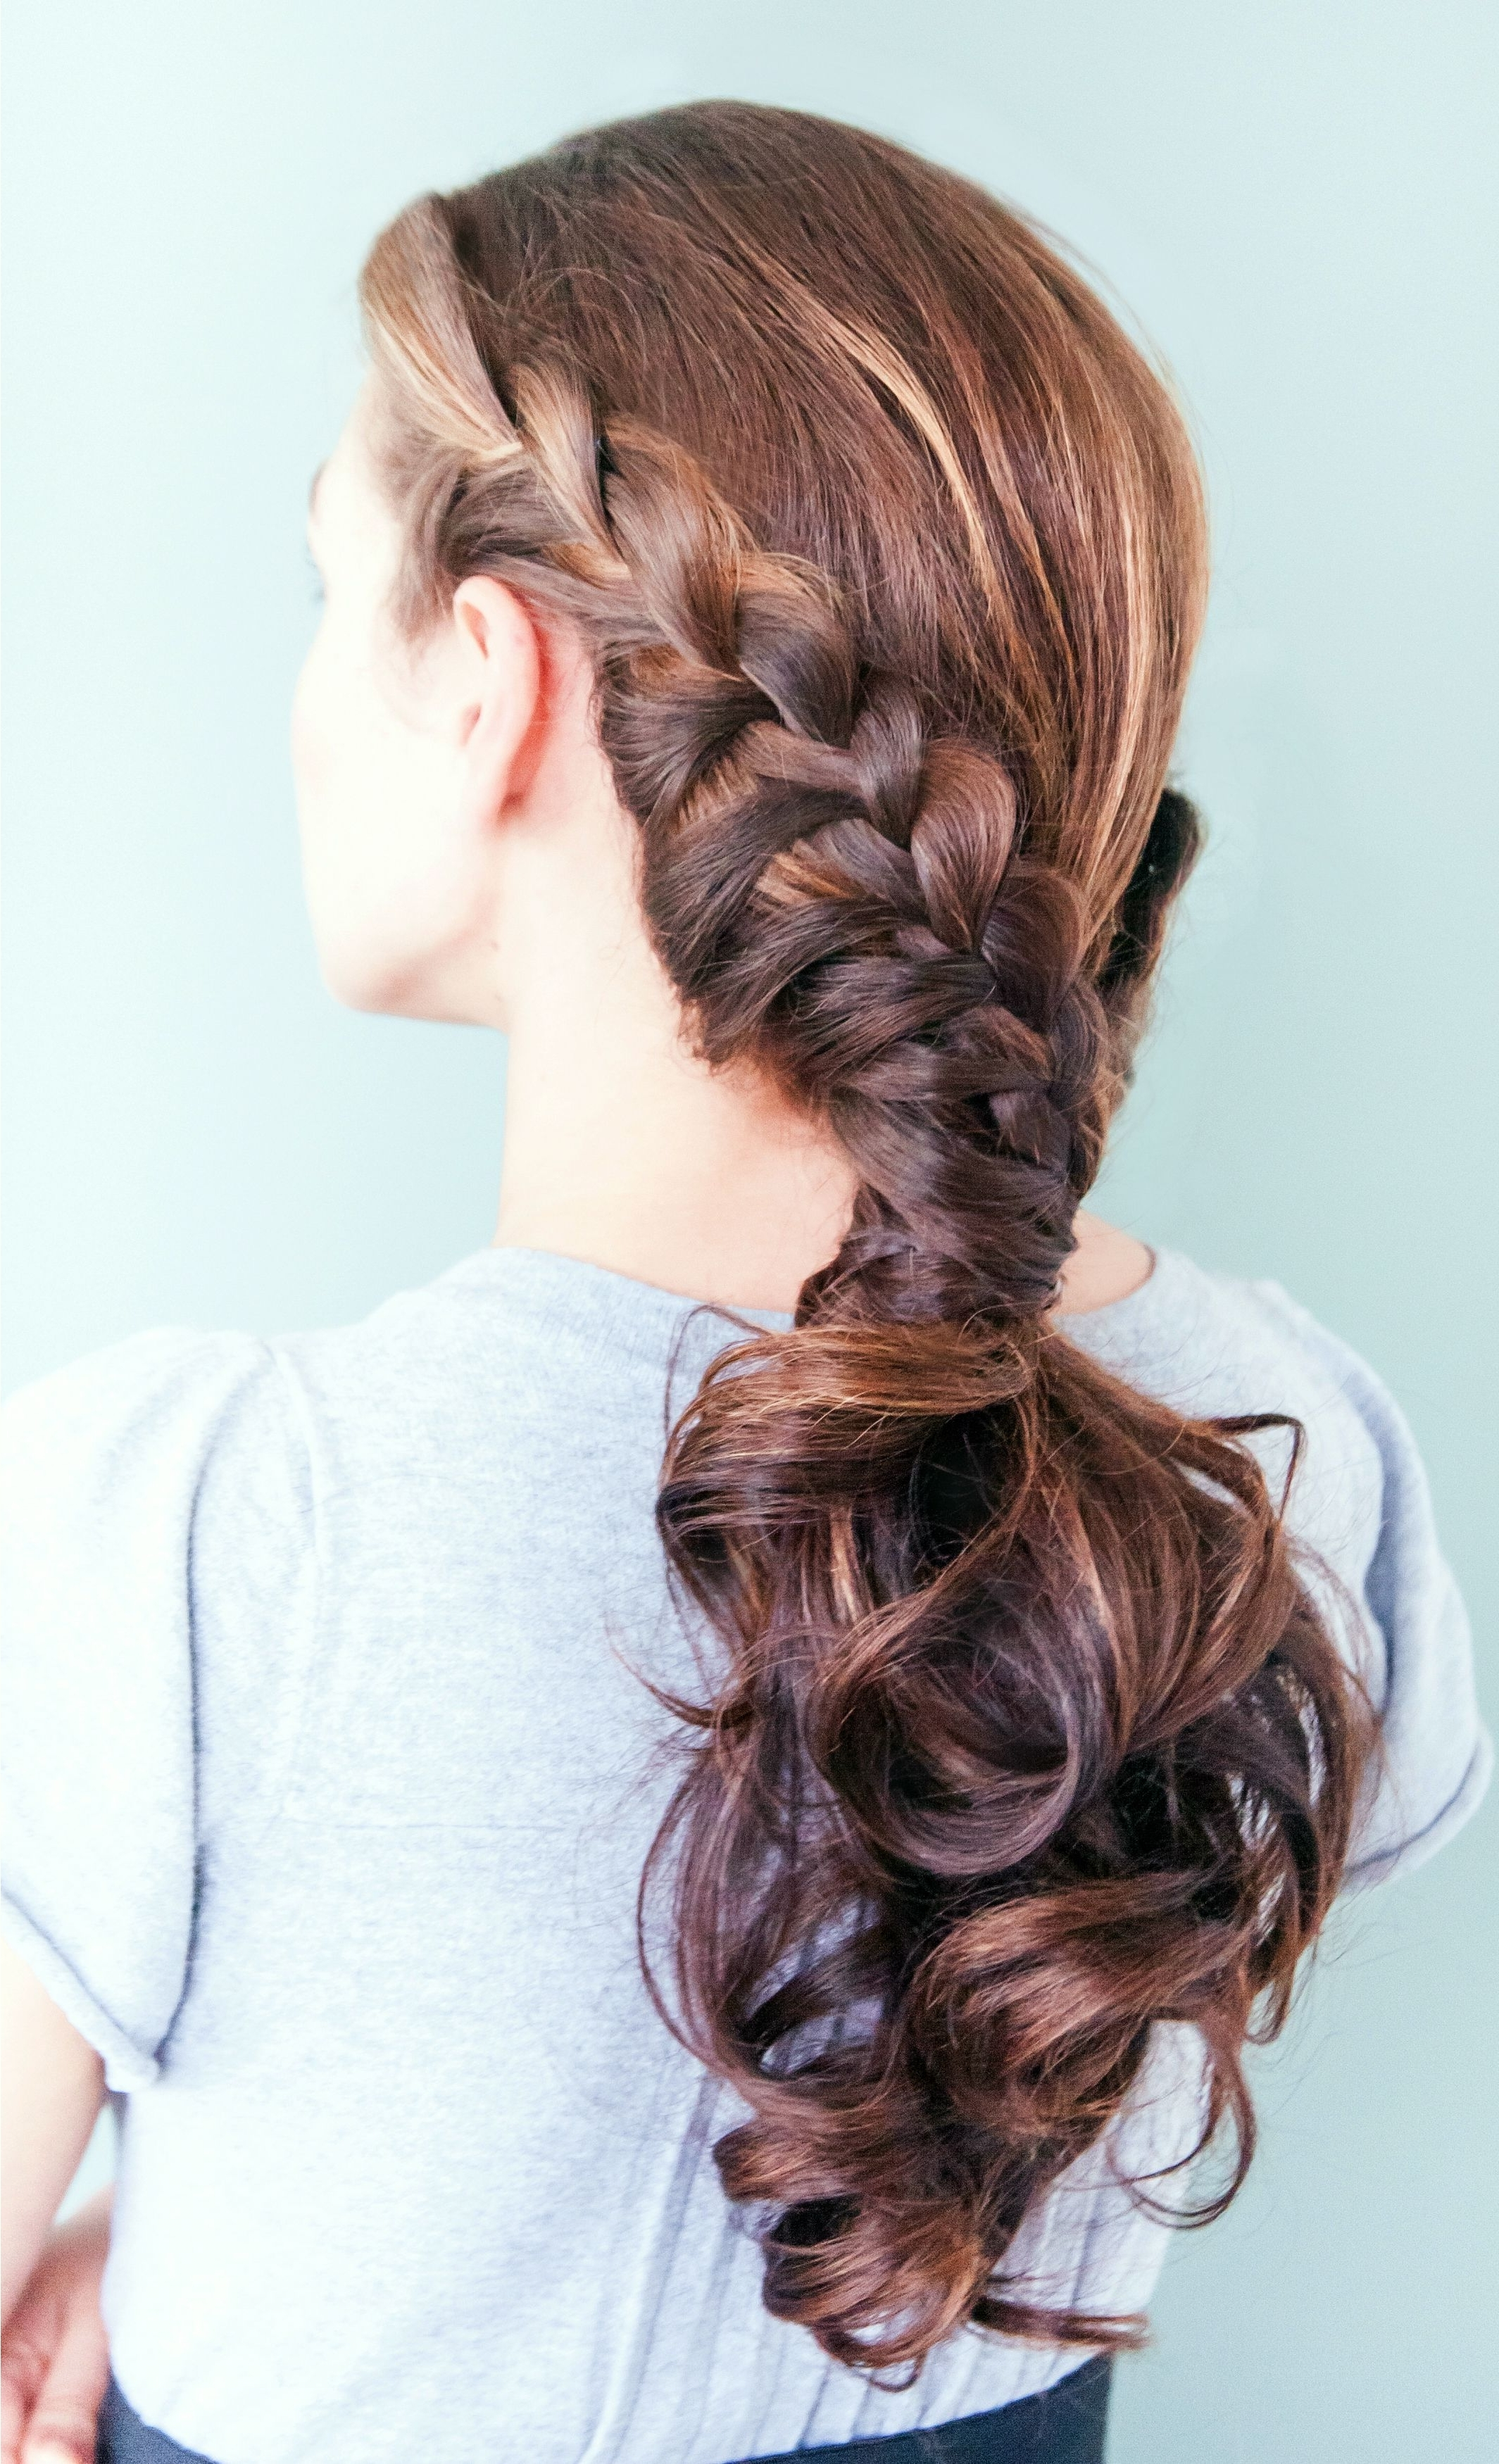 Most Current Messy Pony Hairstyles With Lace Braid With Day 28 – The Zipped Up Ponytail (View 17 of 20)